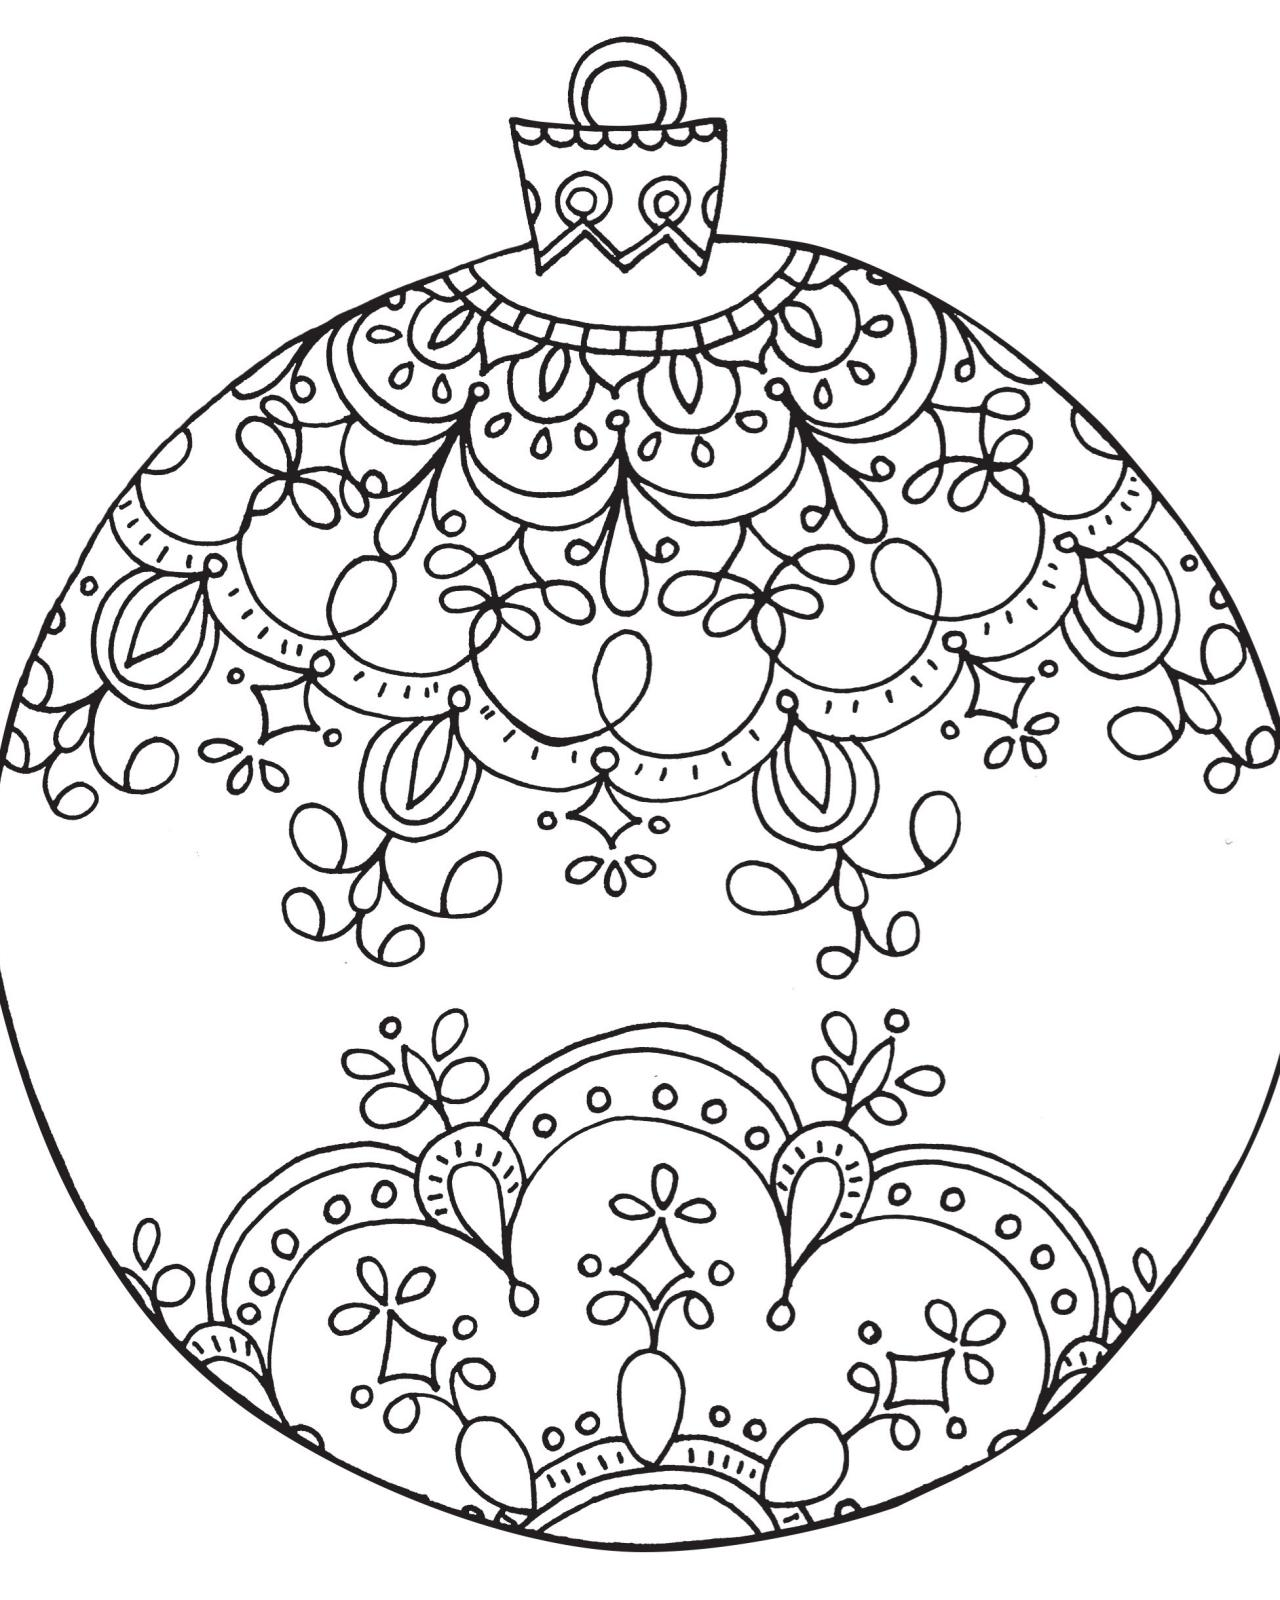 - Christmas Ornaments Coloring Pages – Coloring.rocks!